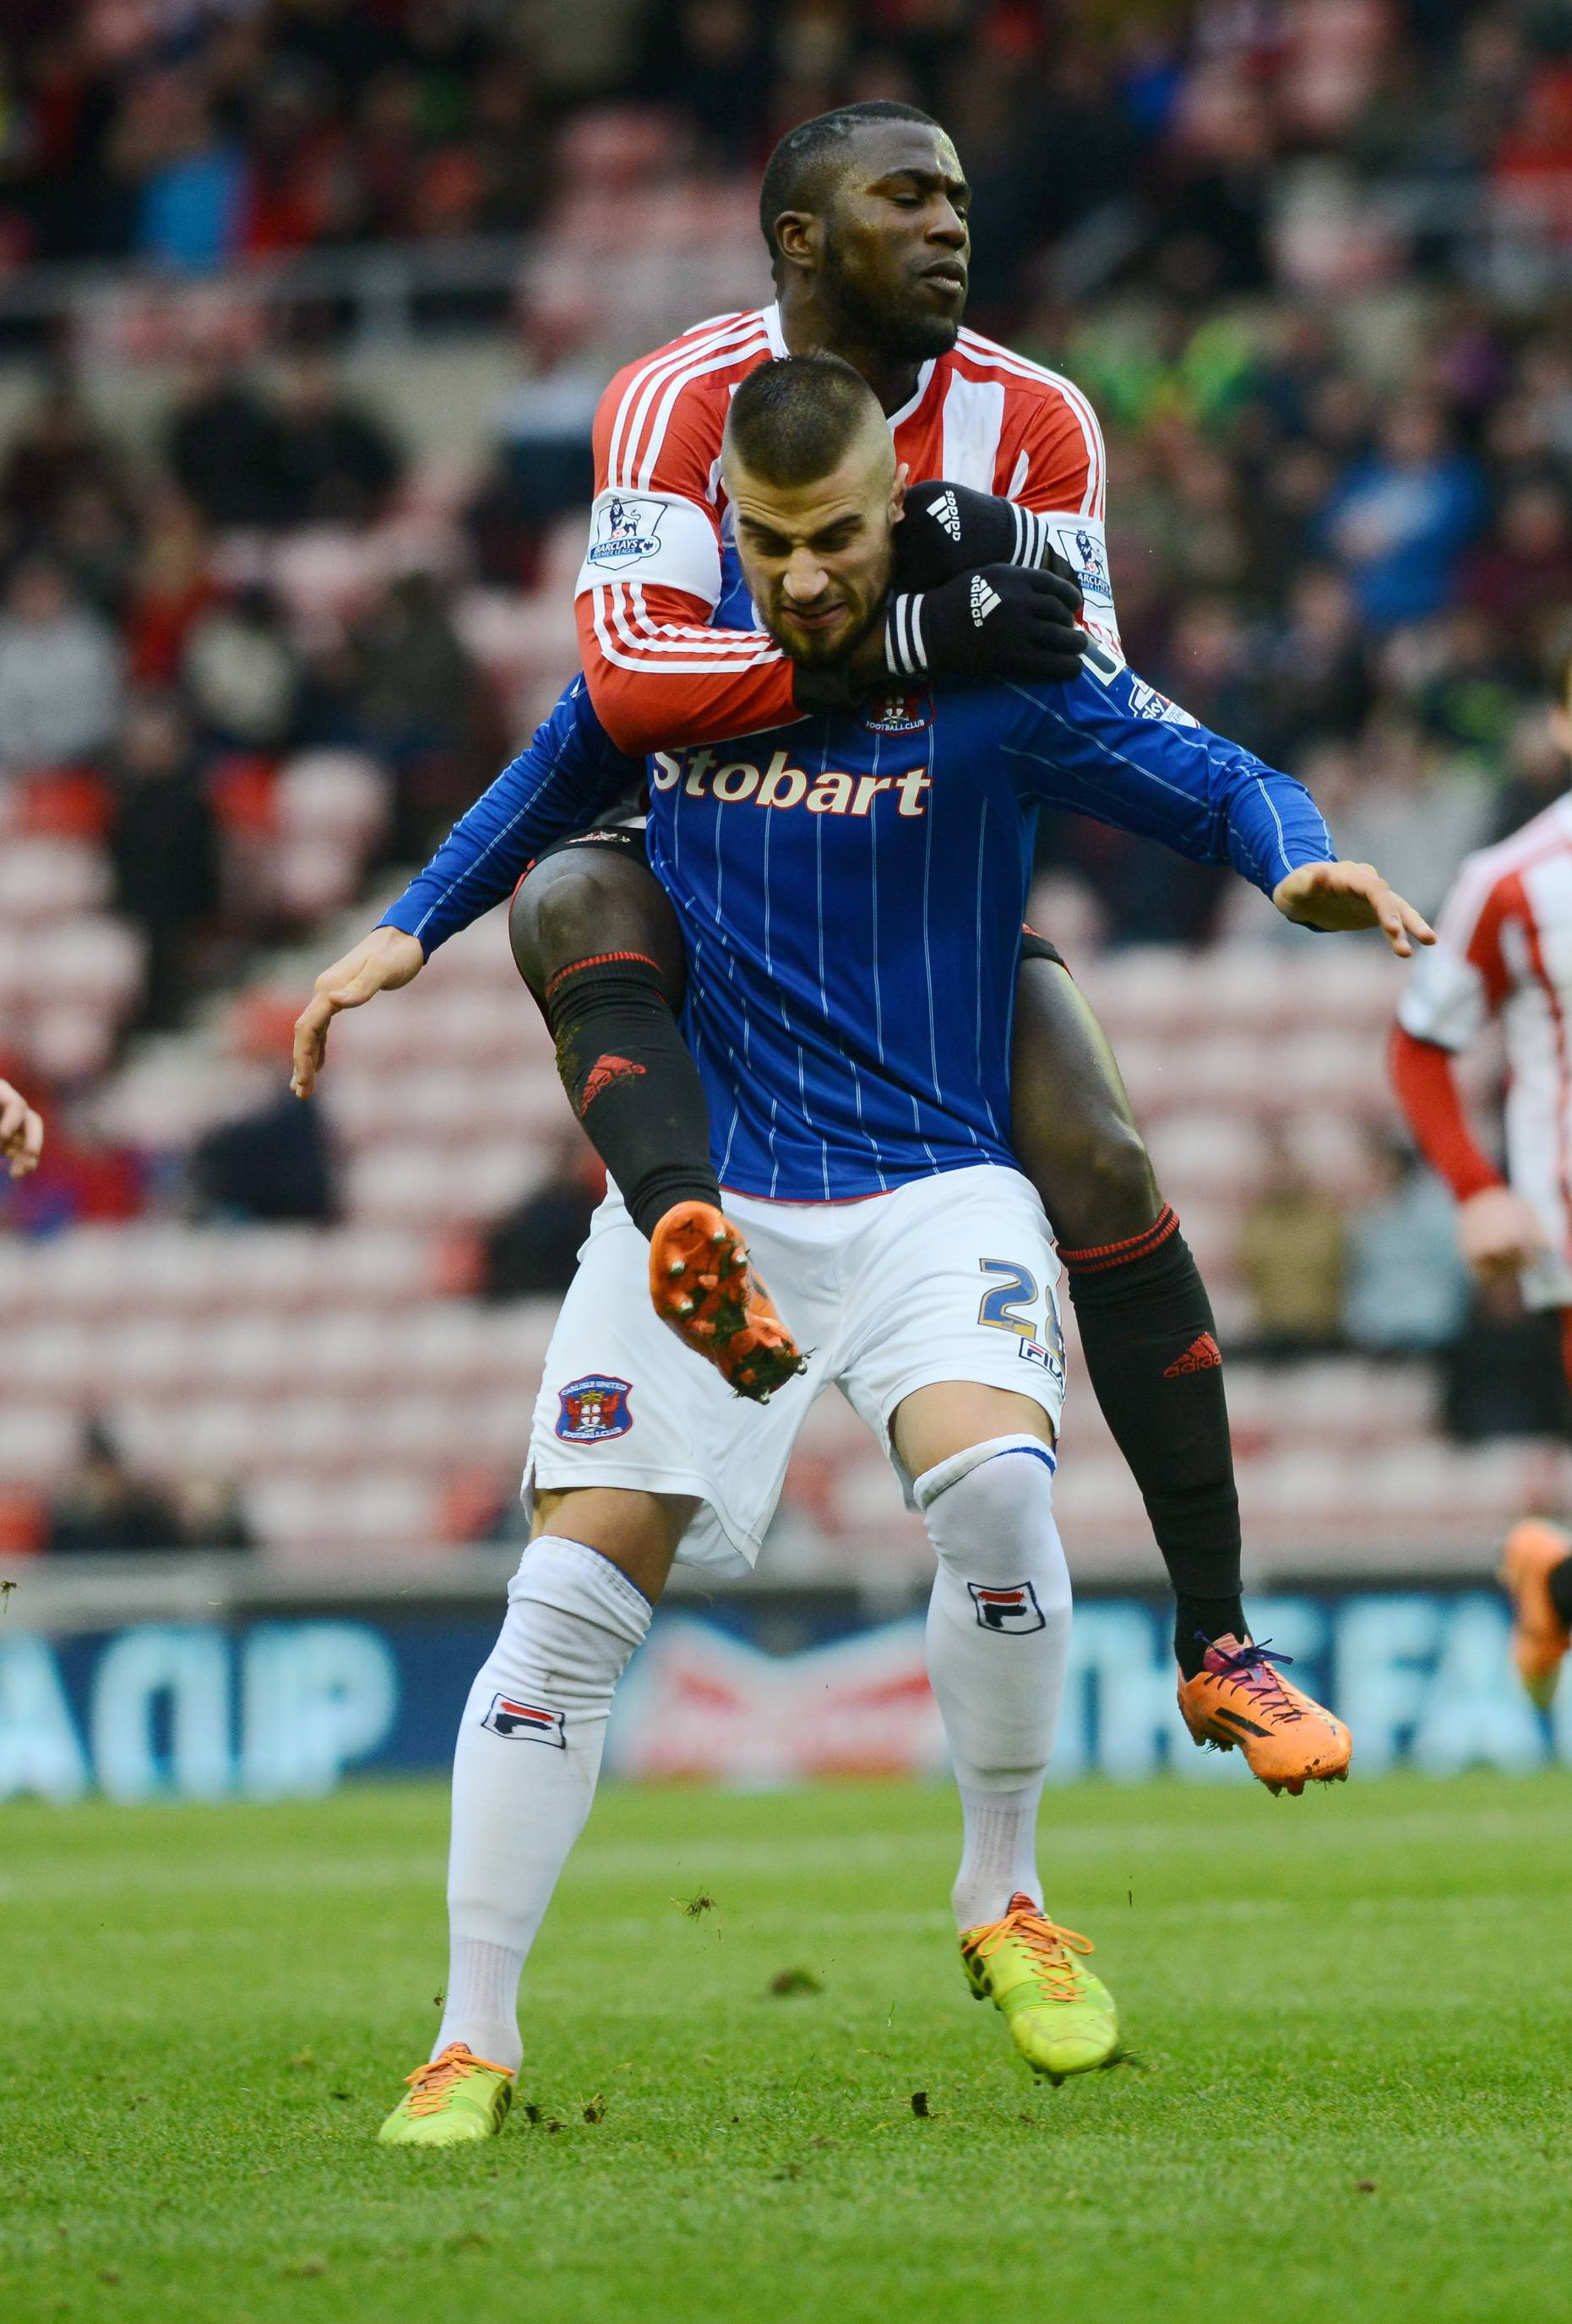 Johnson tells Jozy the goals will soon flow at Sunderland